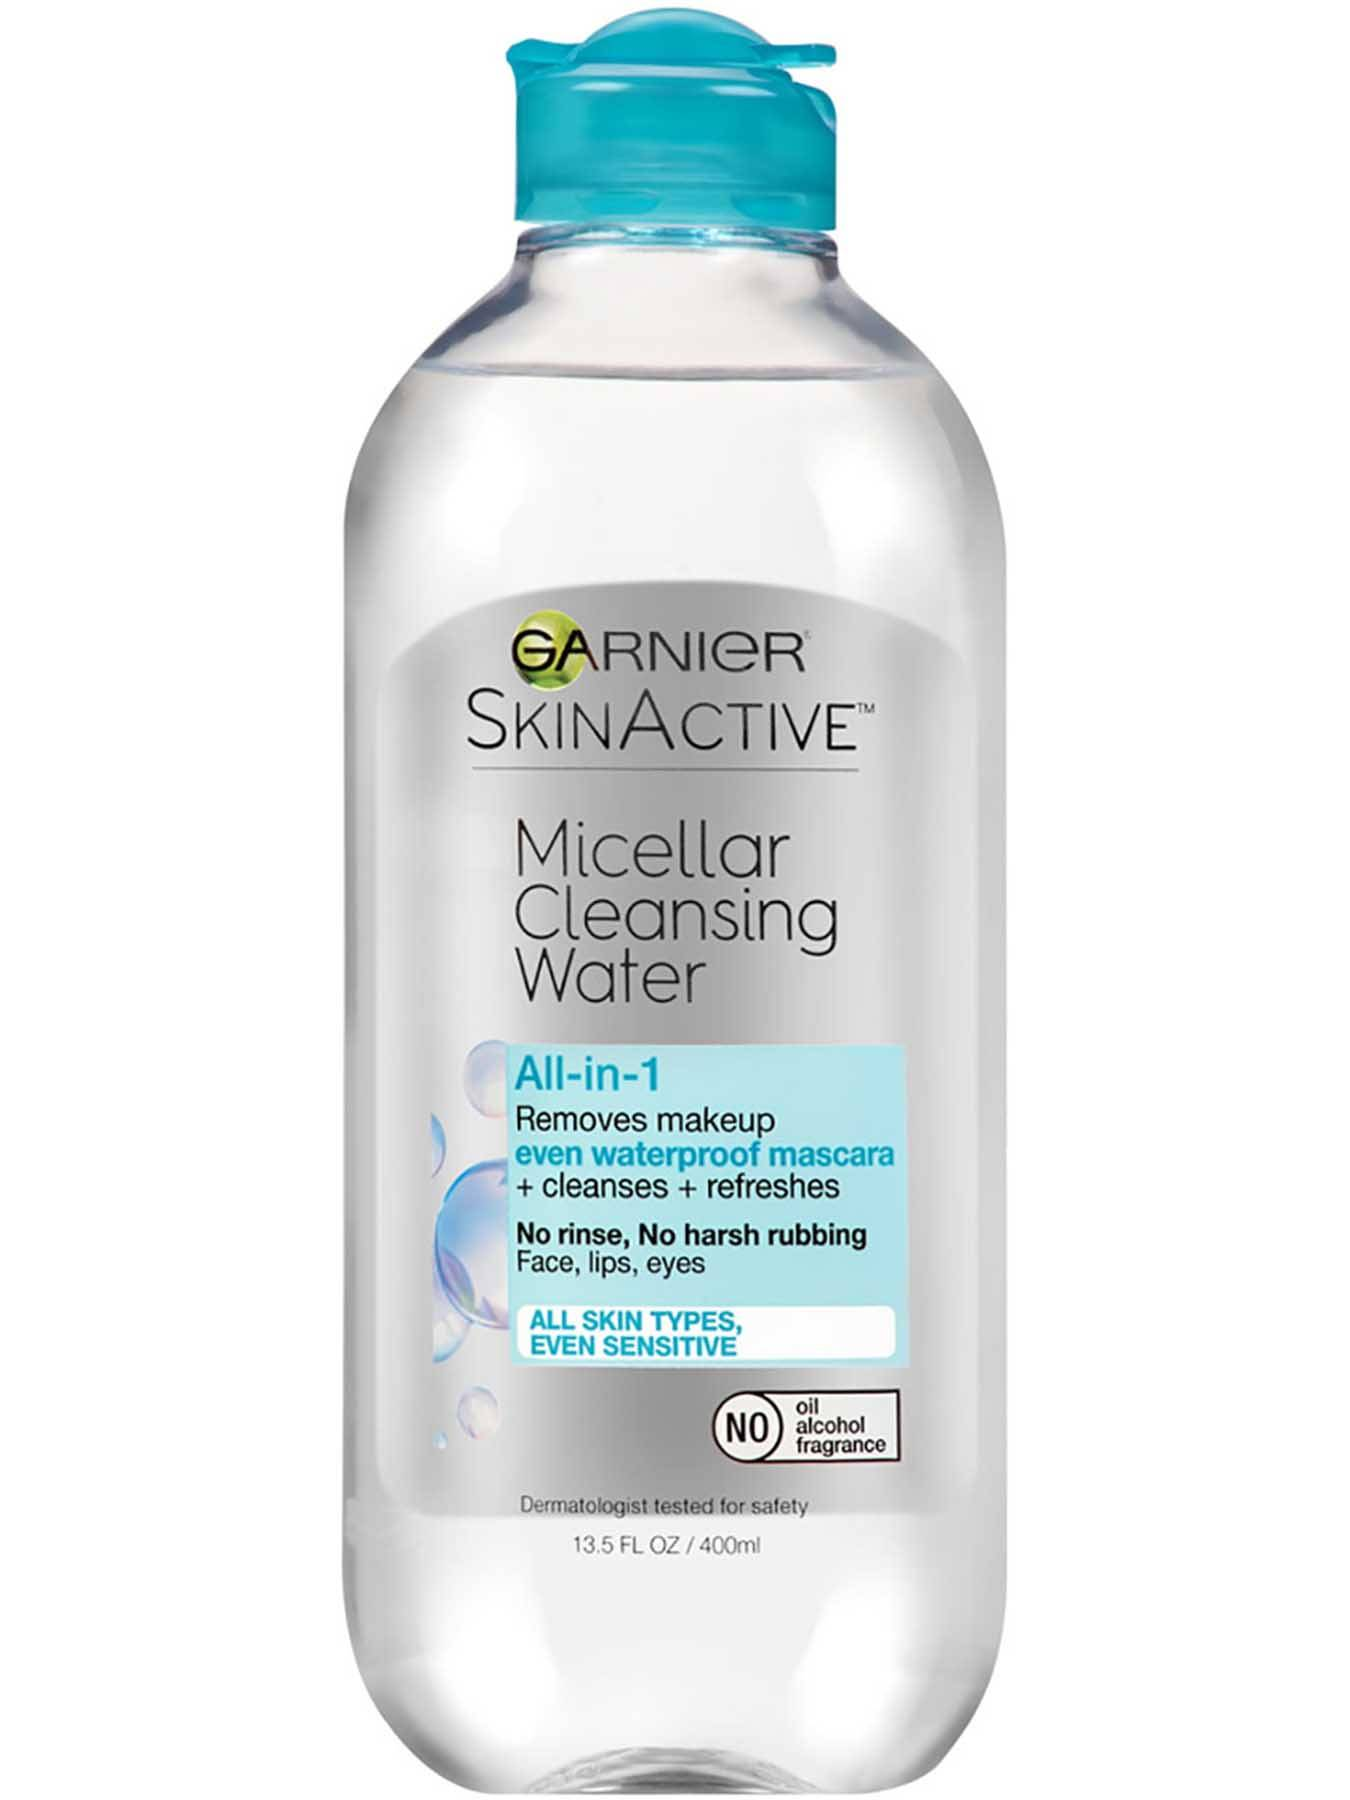 Garnier SkinActive Micellar Cleansing Water All-in-1  Cleanser Waterproof Makeup Remover